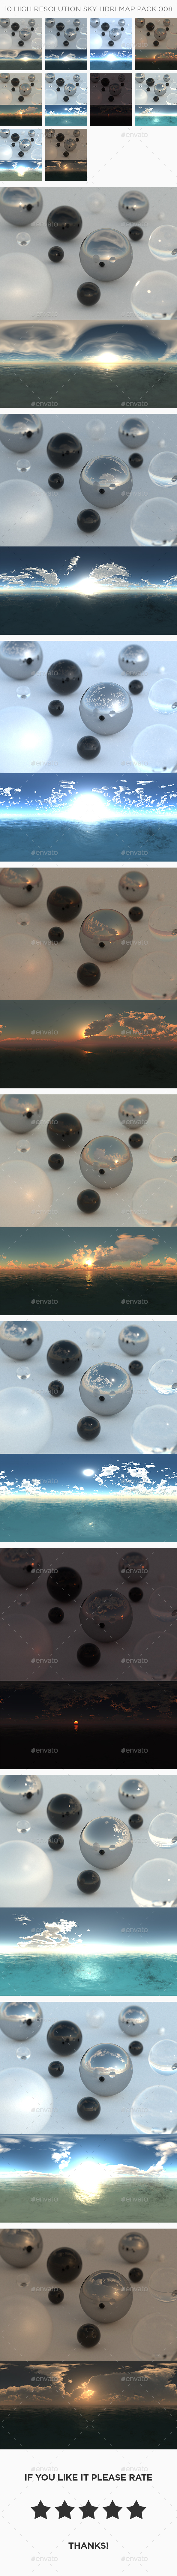 3DOcean 10 High Resolution Sky HDRi Maps Pack 008 20992720